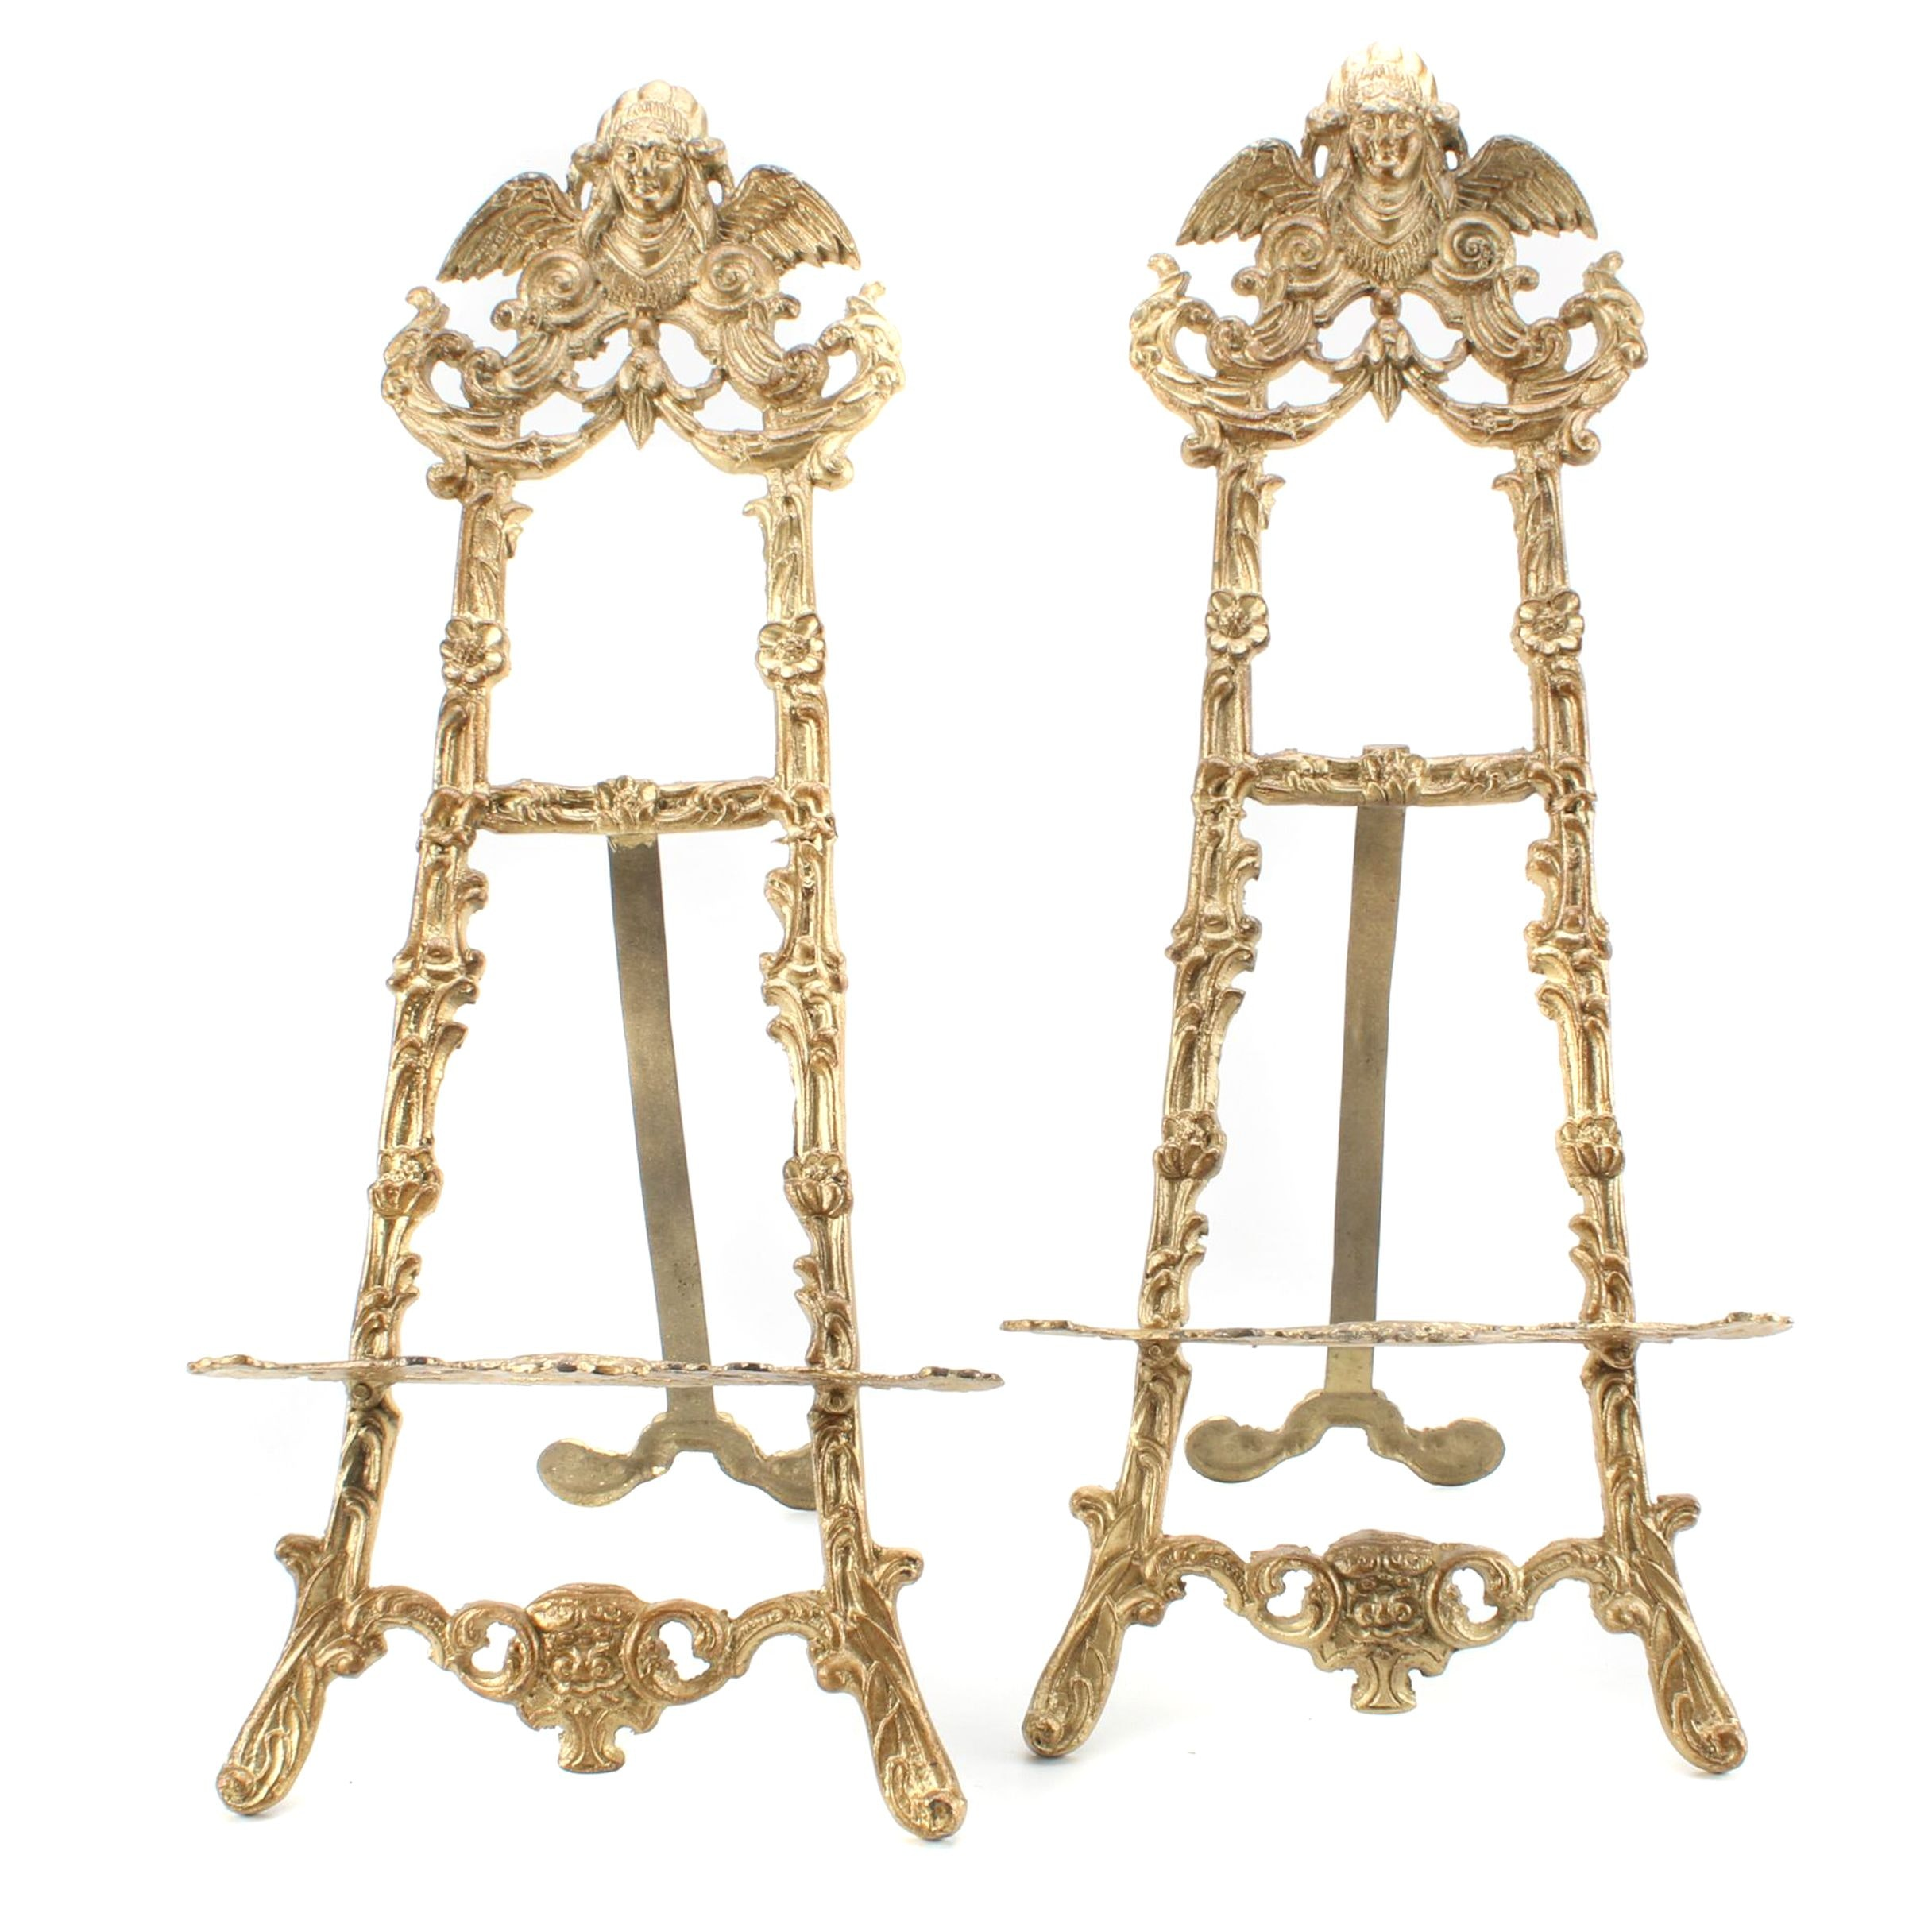 Gold Tone Metal Easel Stands